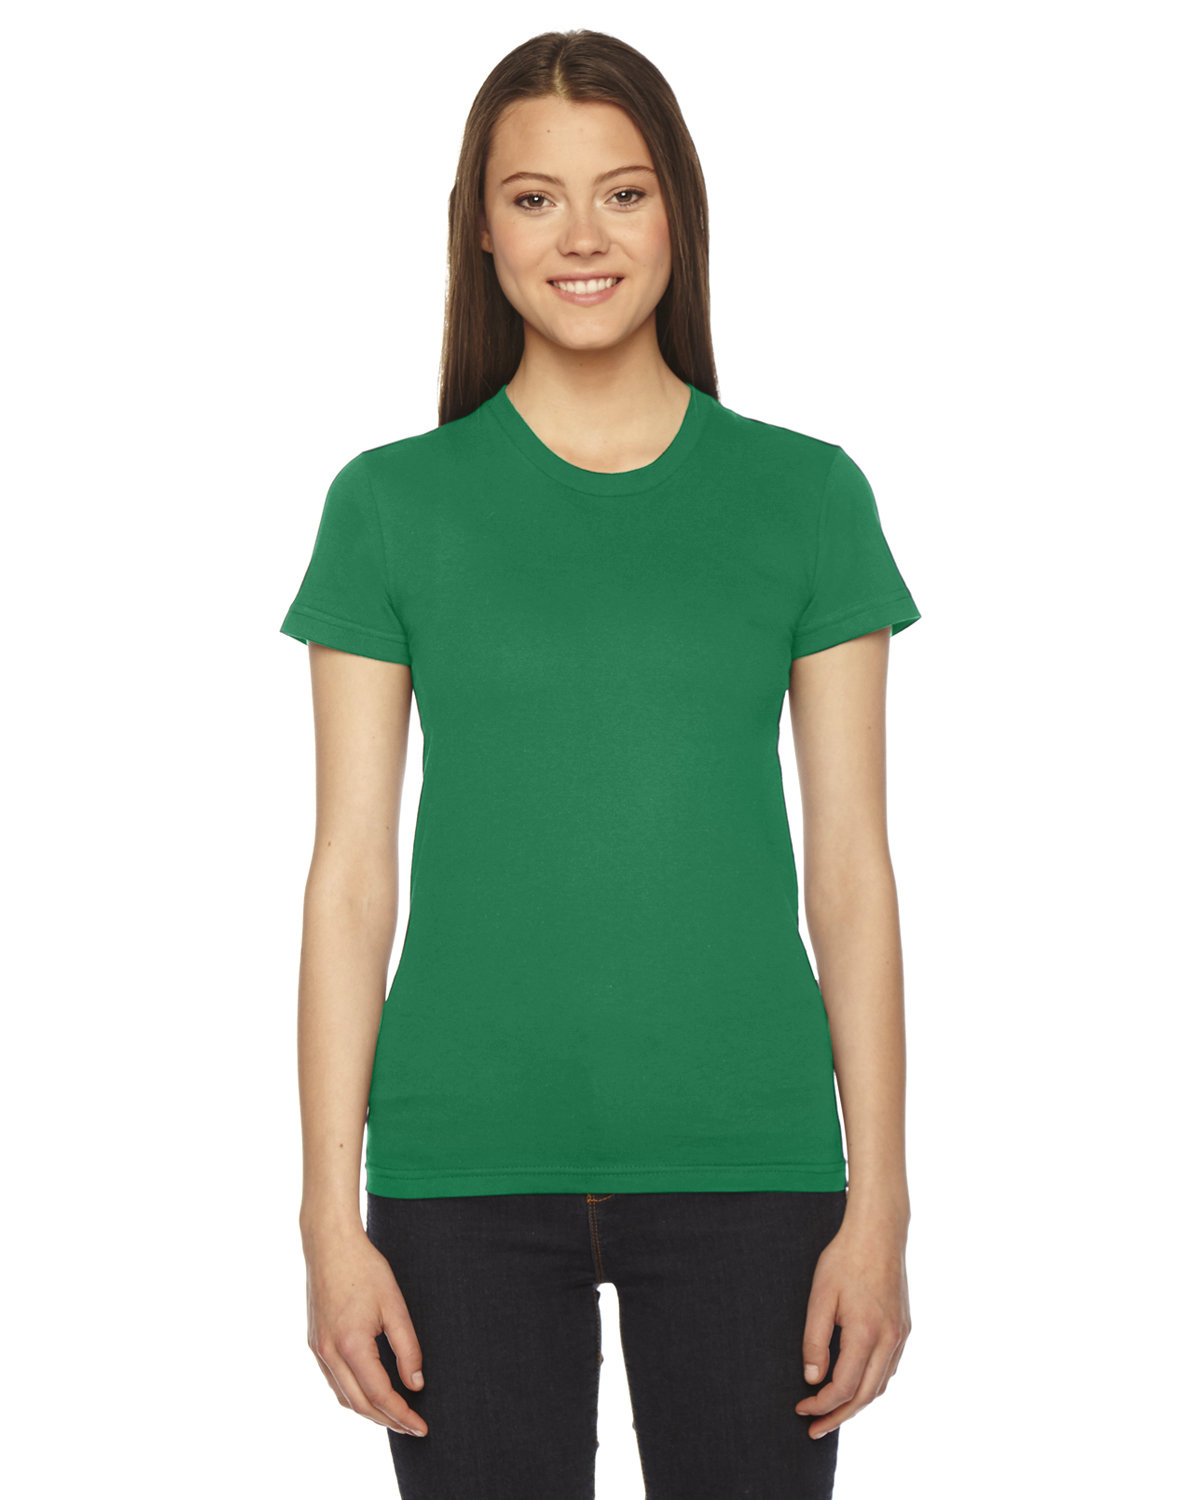 American Apparel Ladies' Fine Jersey Short-Sleeve T-Shirt KELLY GREEN